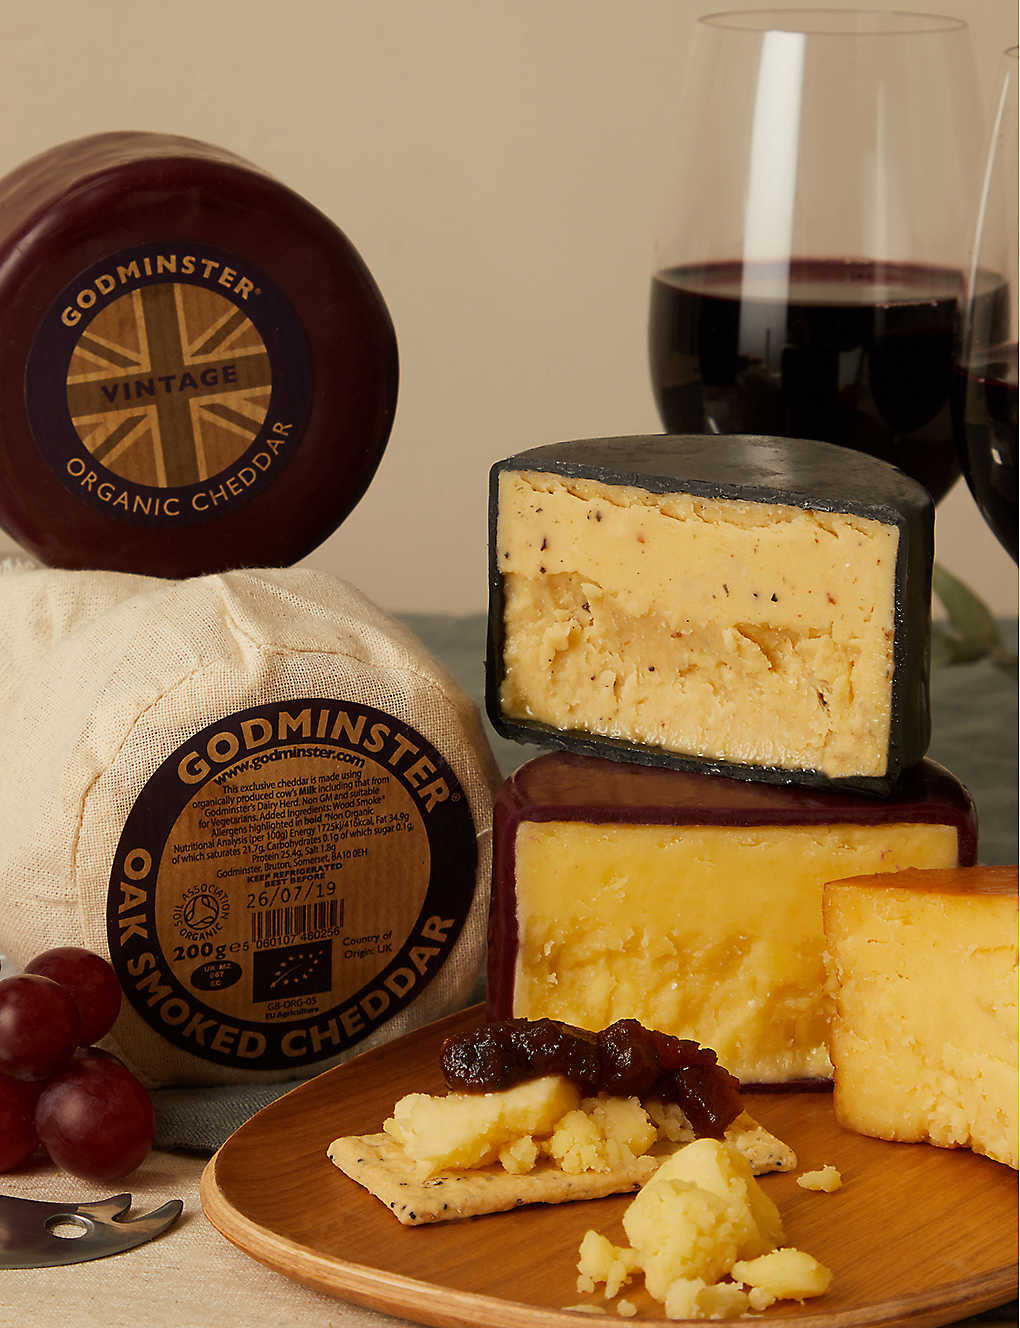 GODMINSTER: Three cheese selection gift set